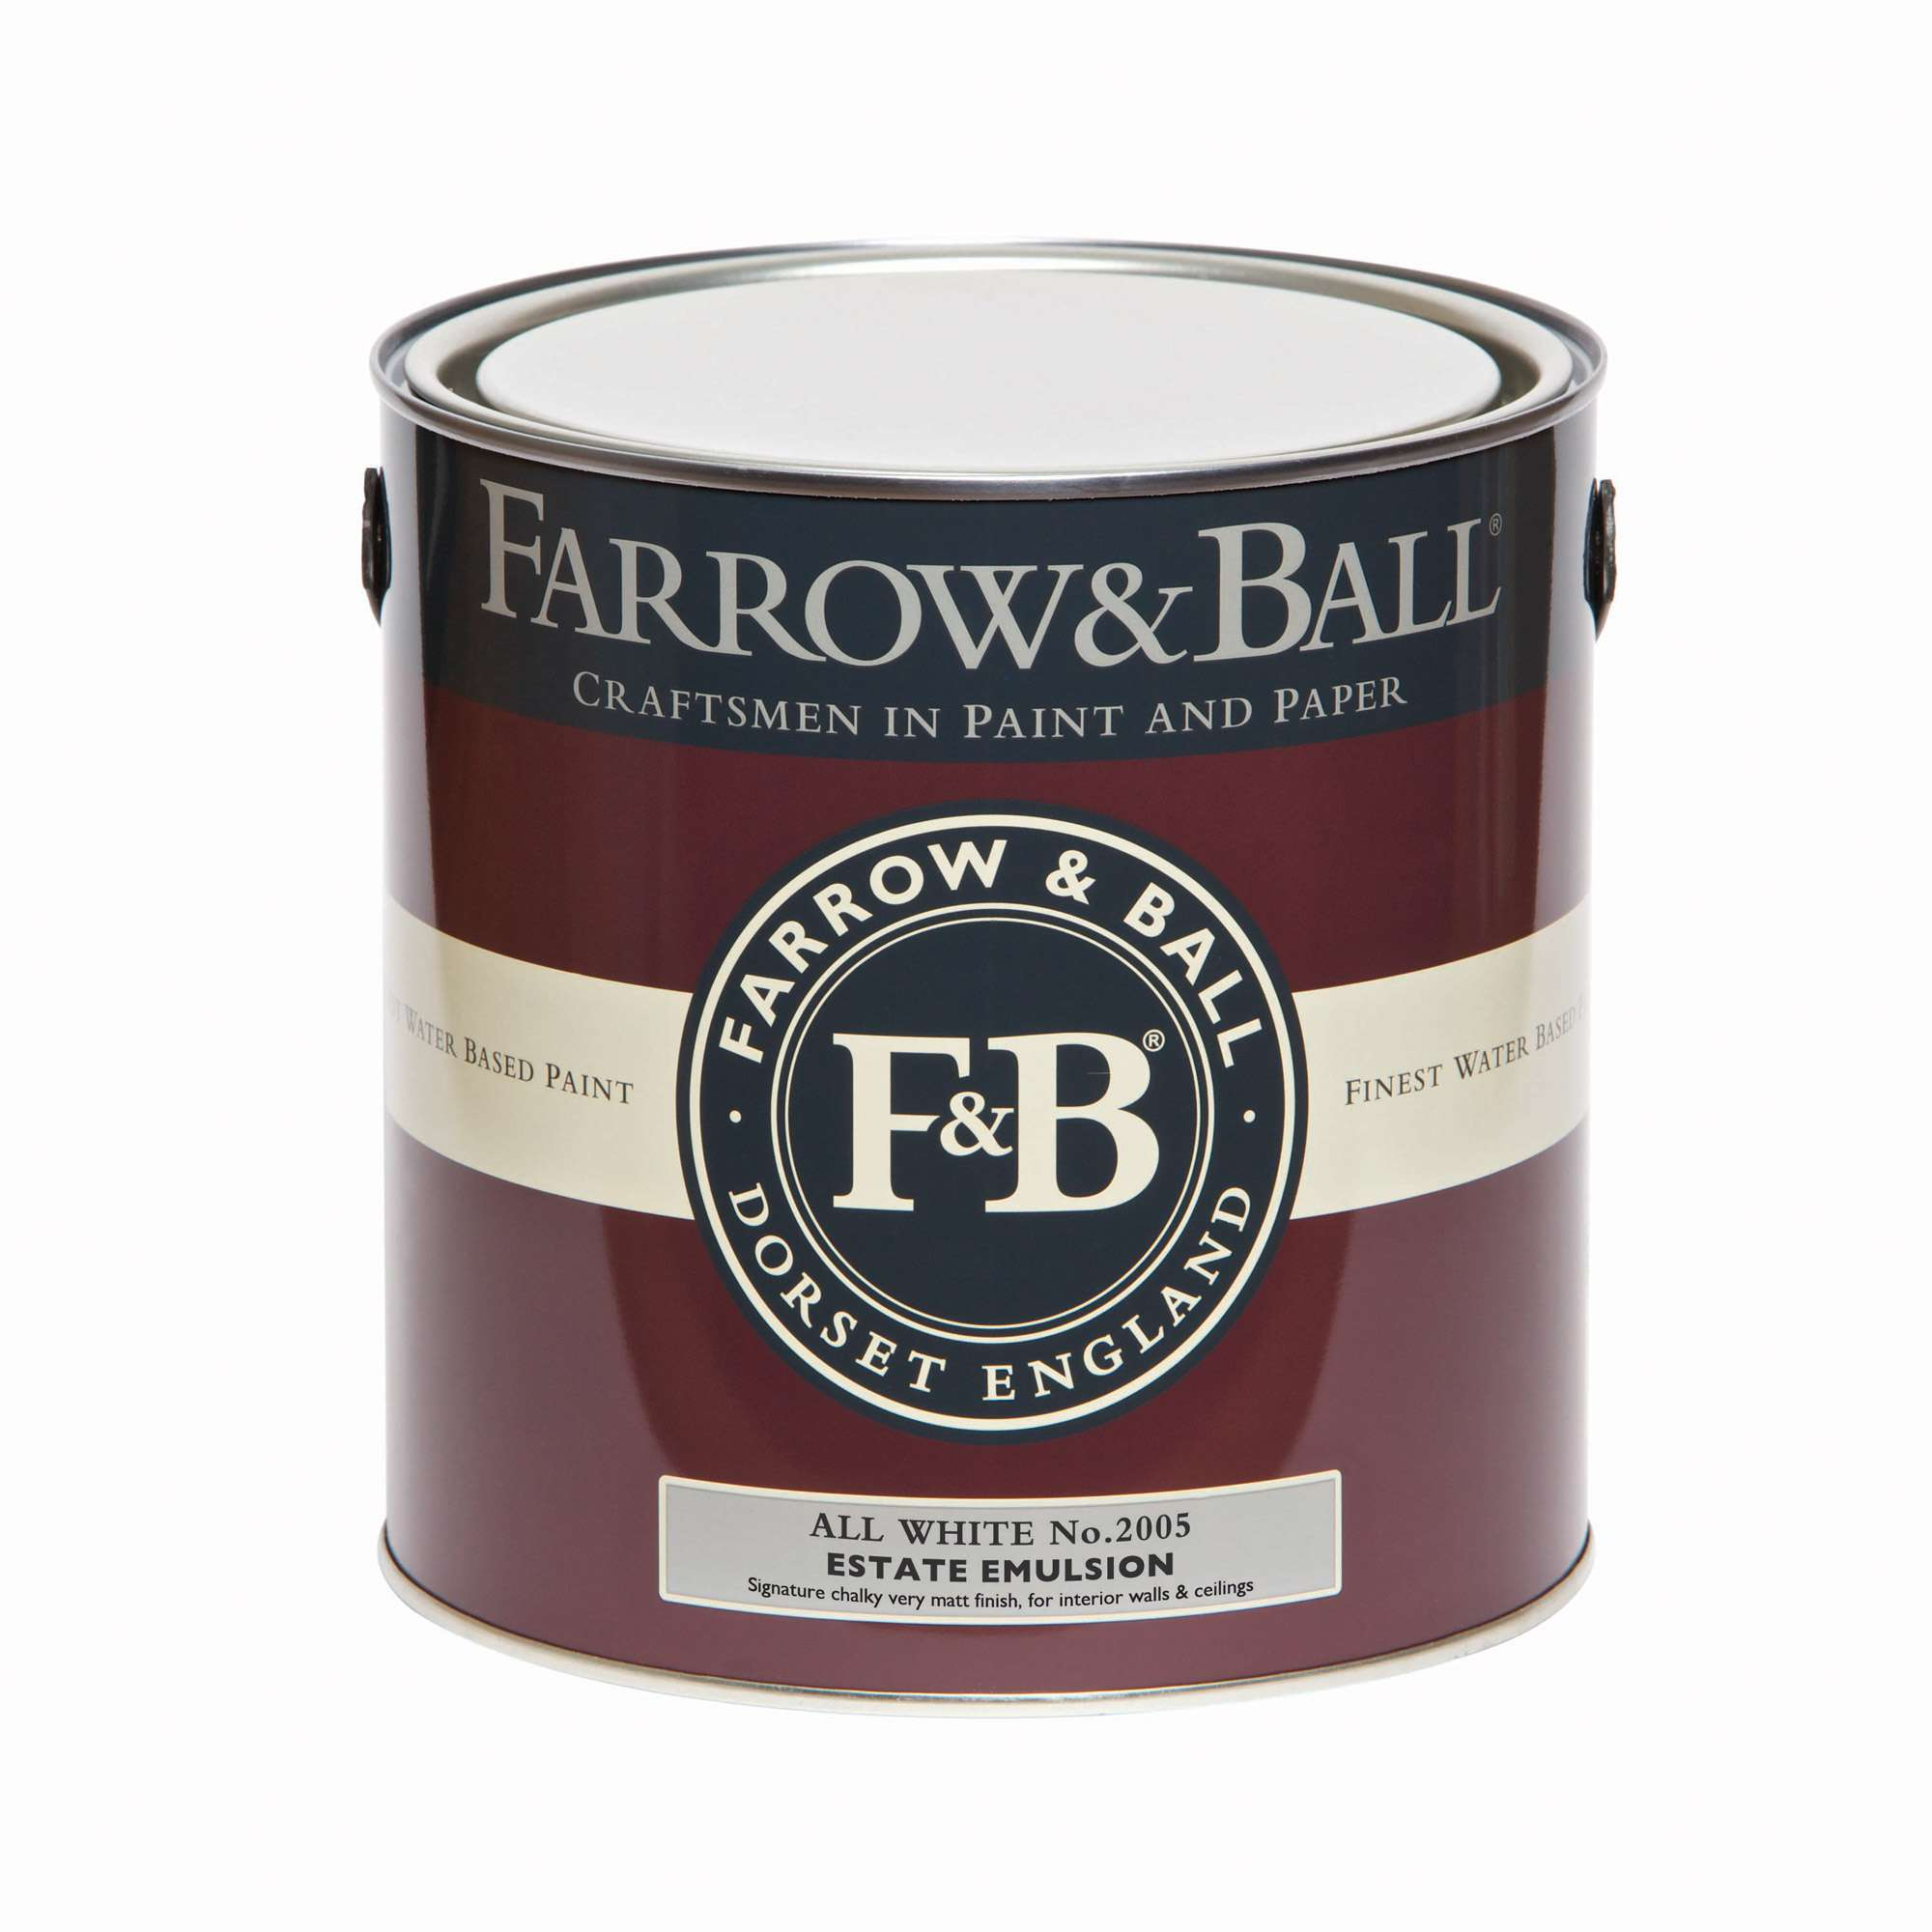 Farrow and ball gallon